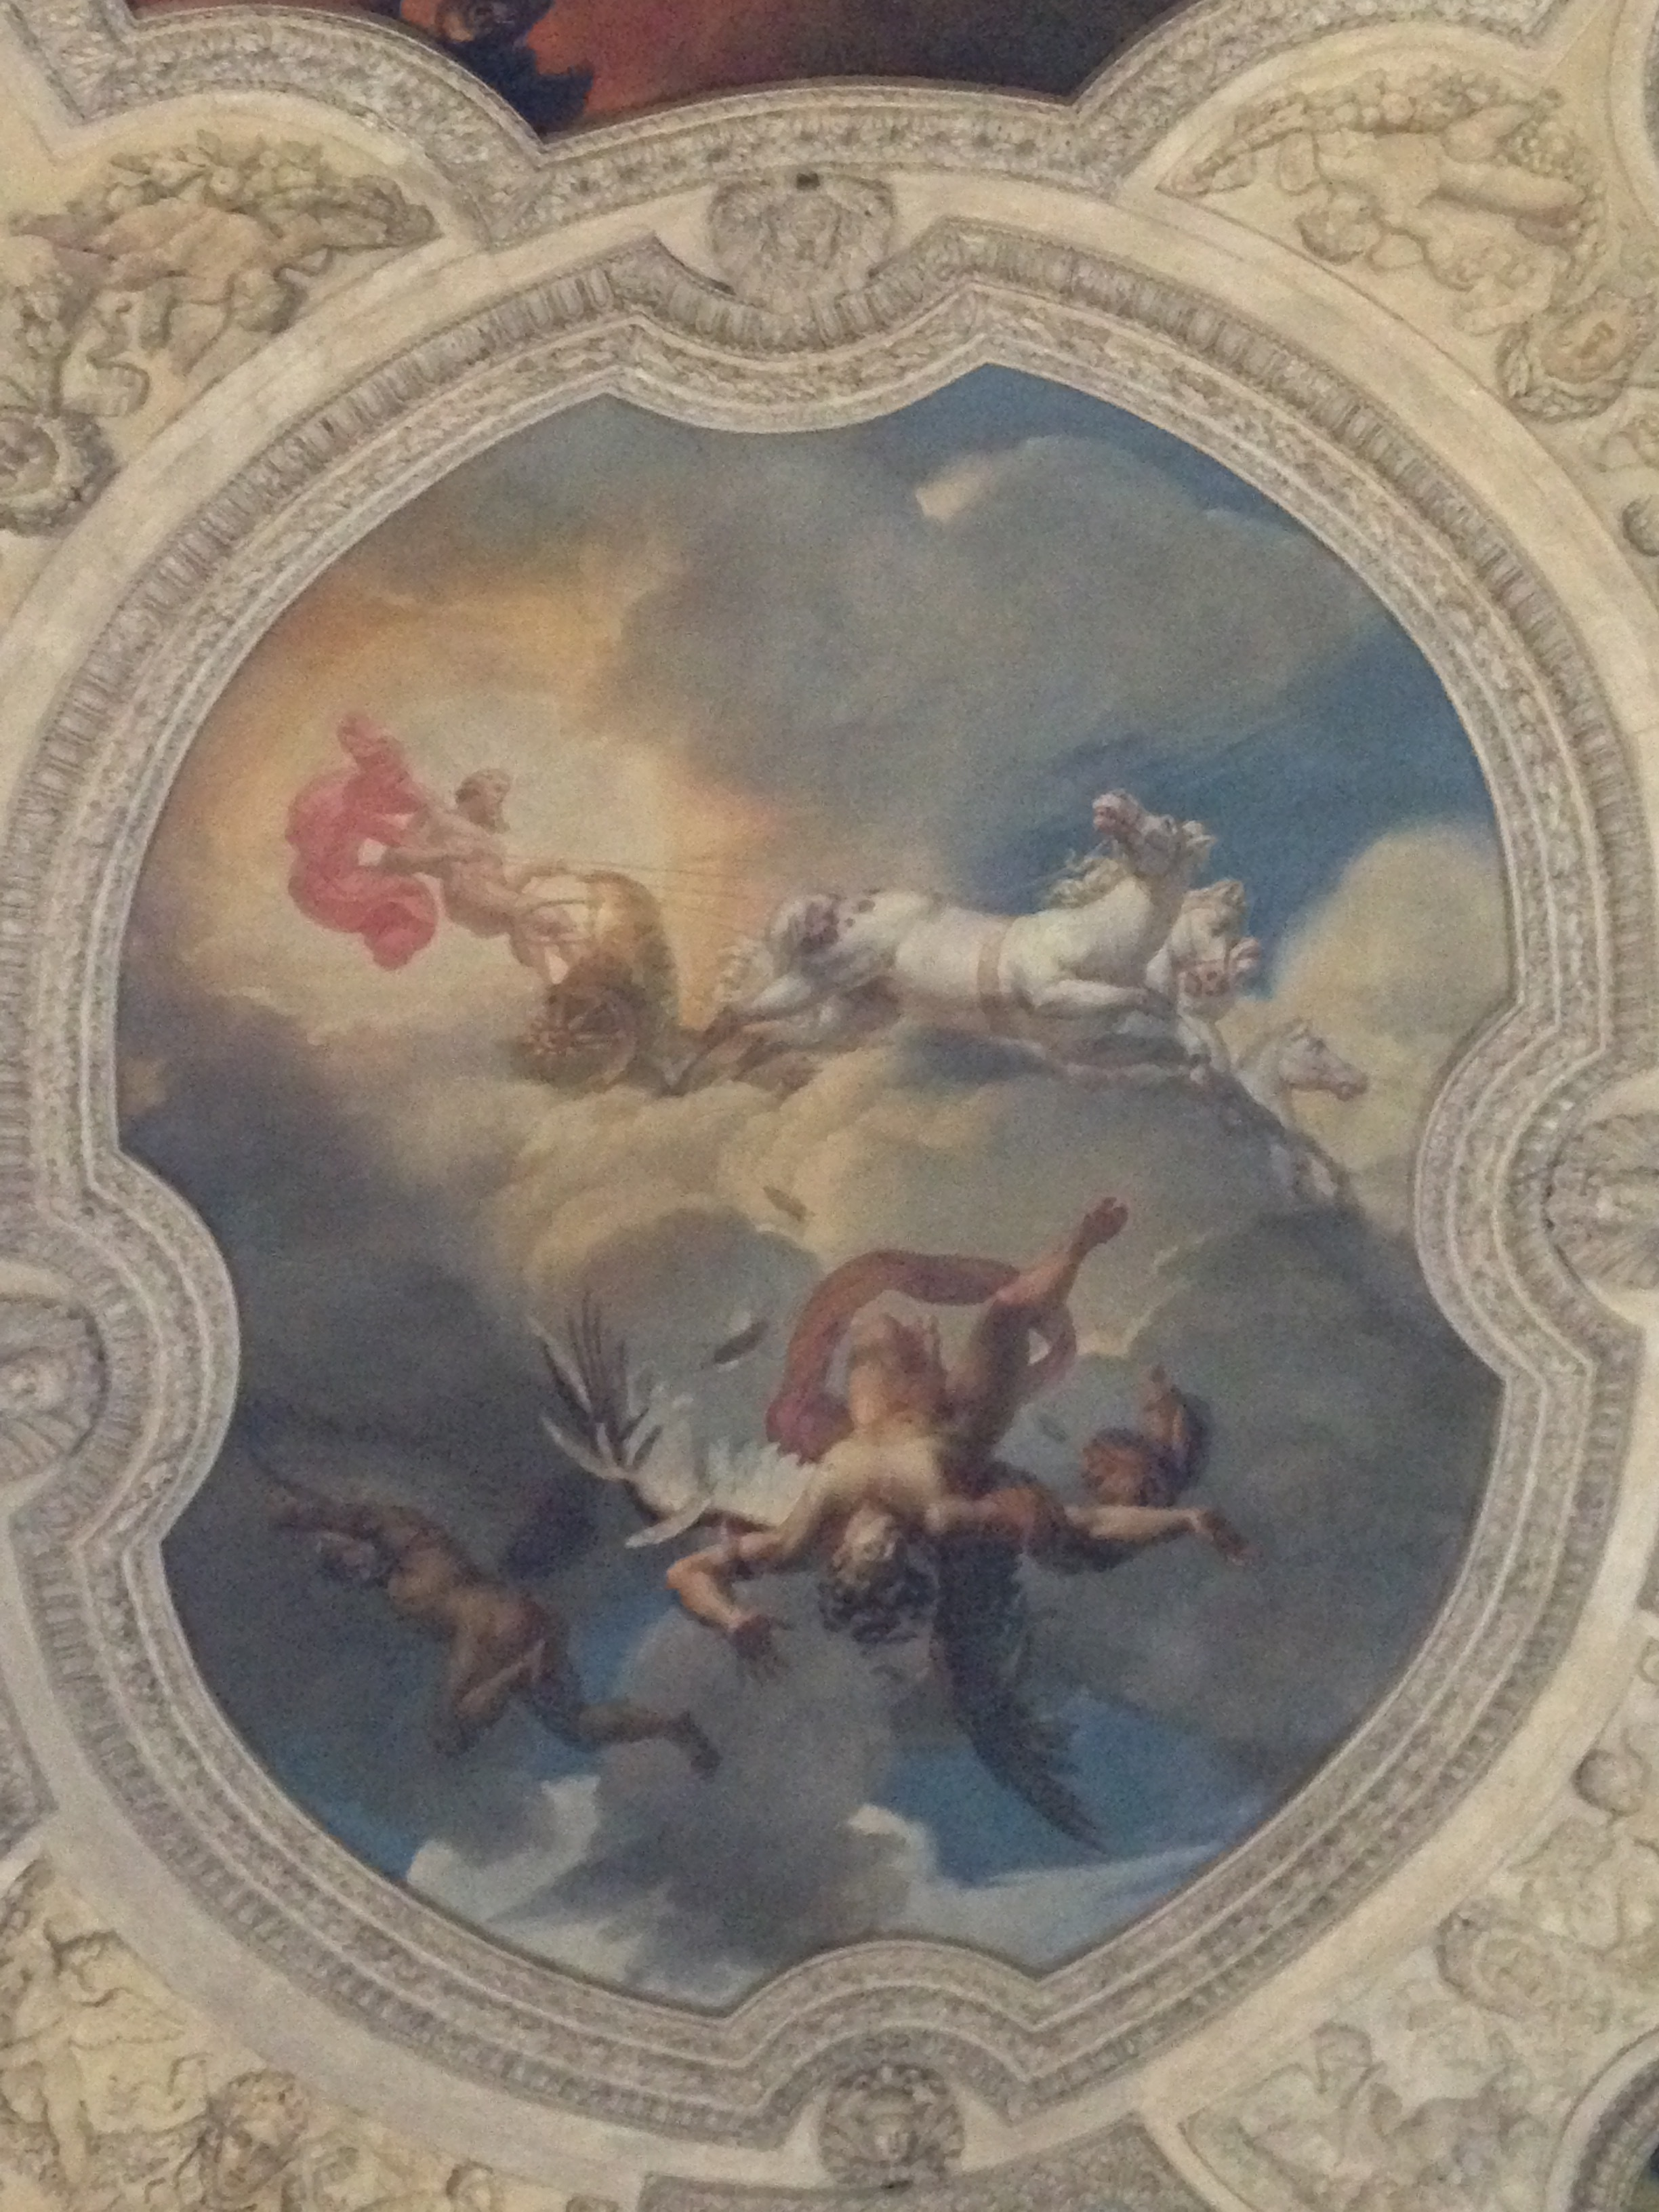 Icarus at the Louvre!